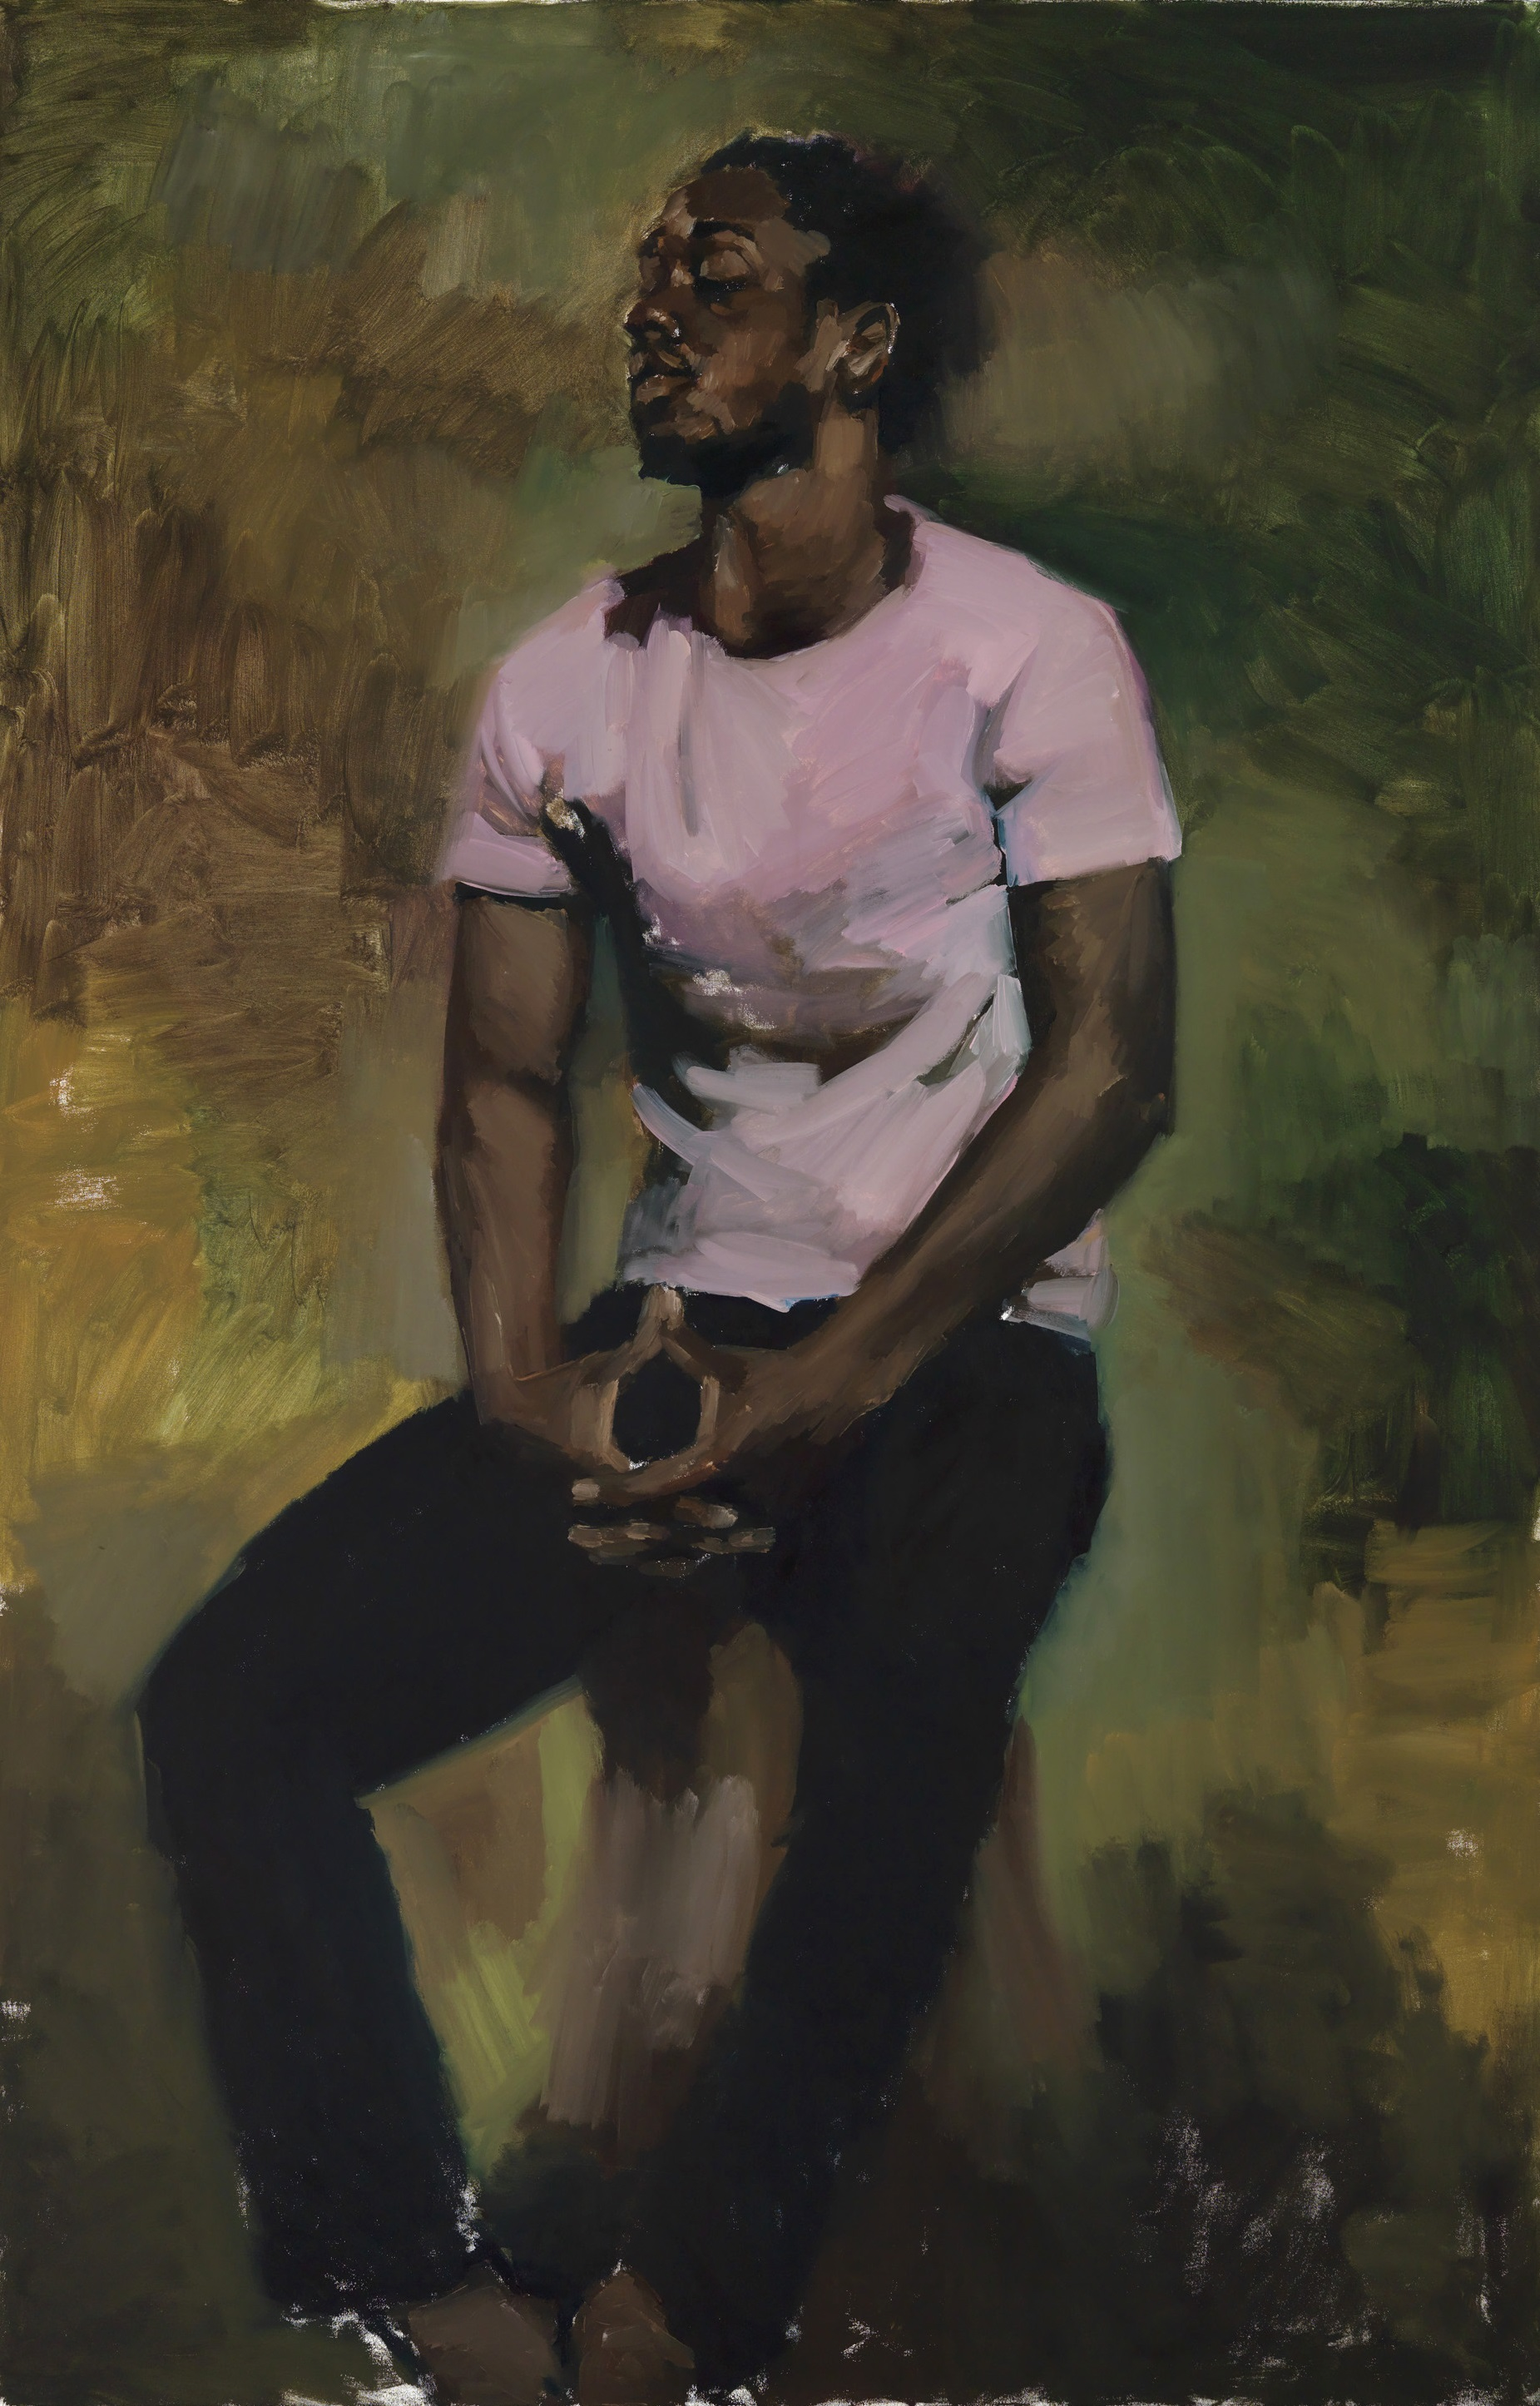 Lynette Yiadom-Boakye | Coterie Of Questions 2015 | Oil paint on canvas | 2000 x 1300 x 37 mm | Private collection. Courtesy Corvi-Mora, London and Jack Shainman Gallery, New York © Lynette Yiadom-Boakye